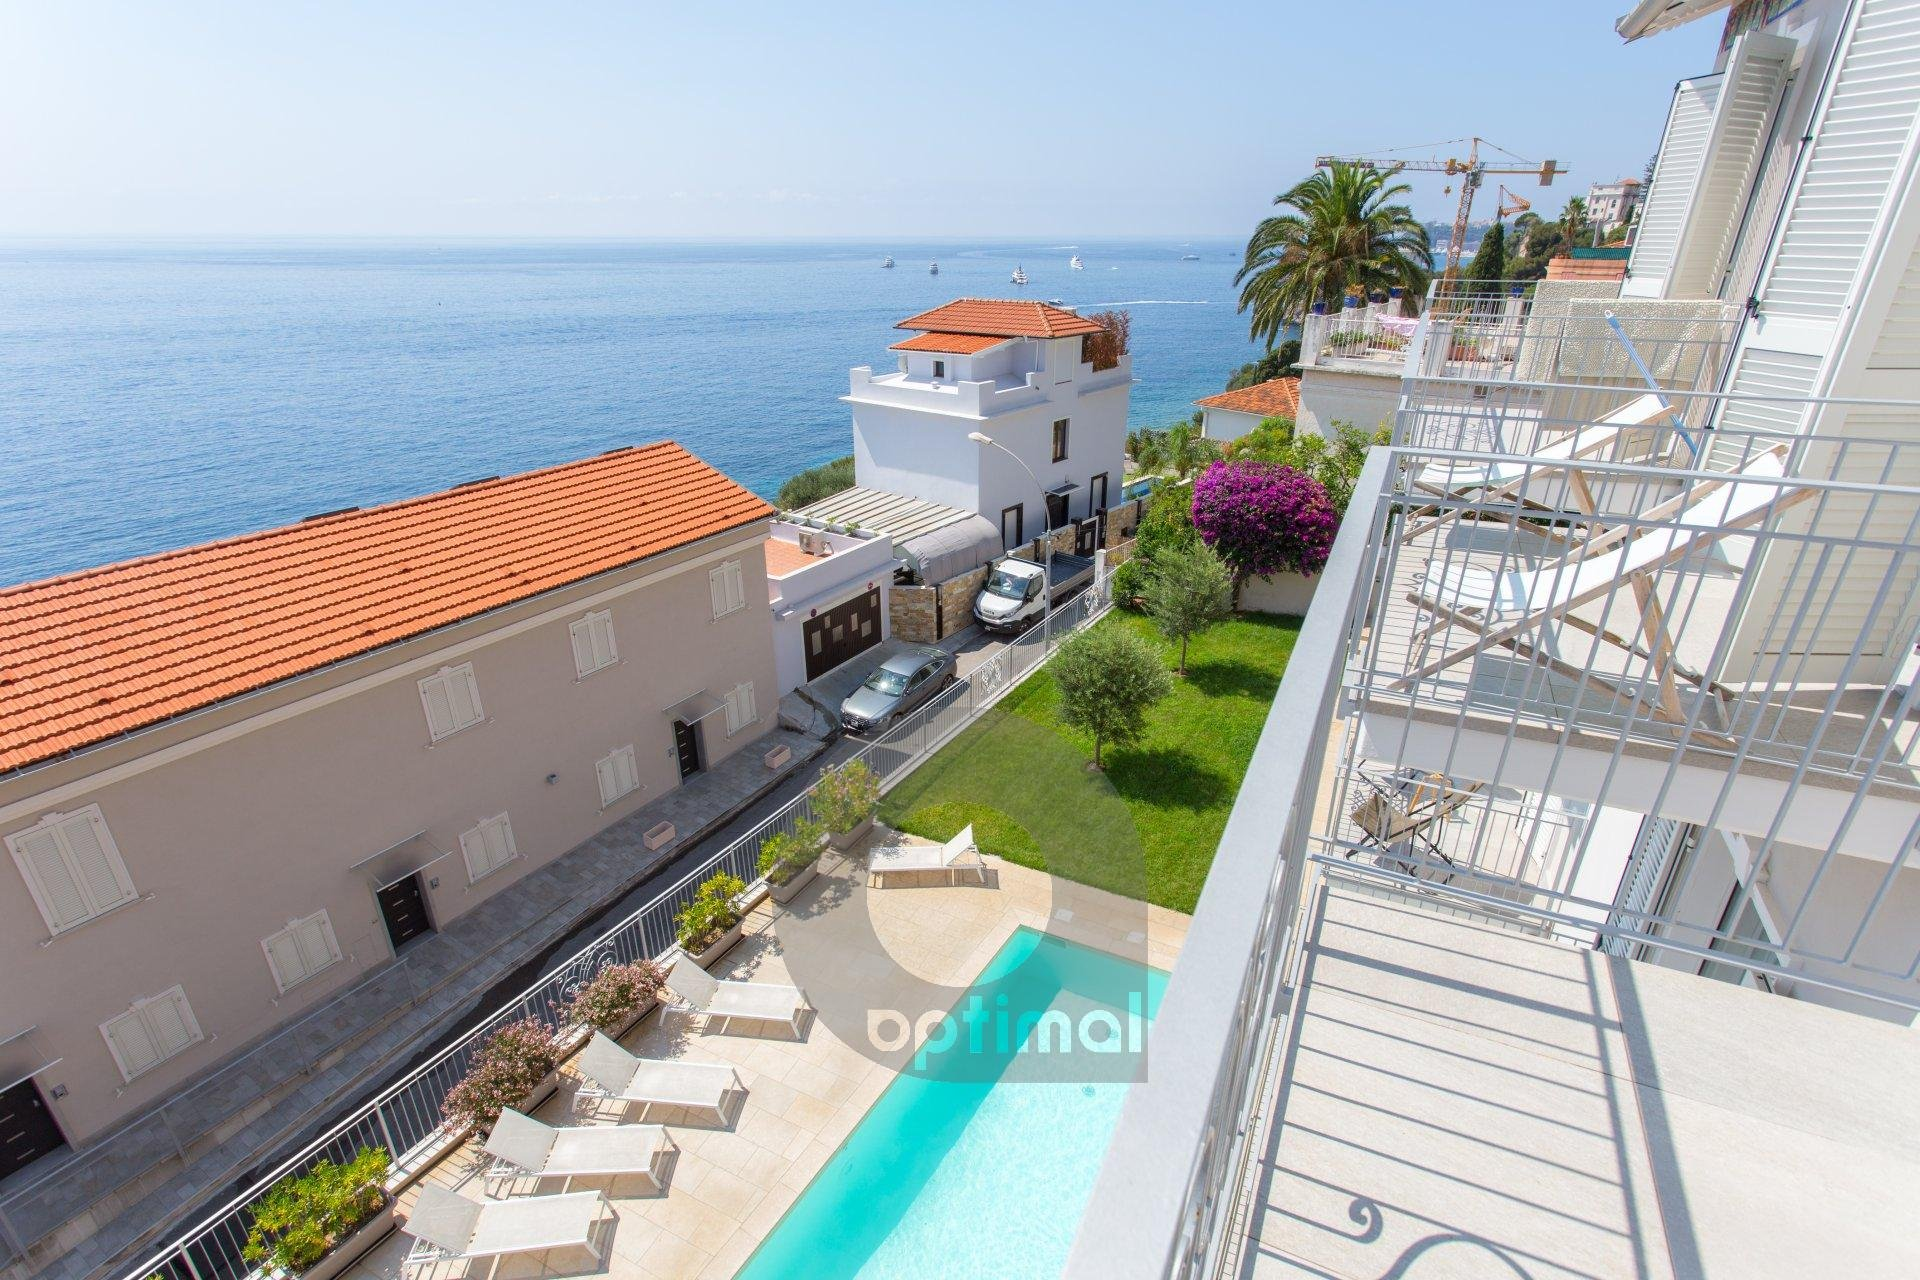 Lasts opportunities in very high standing building near Monaco